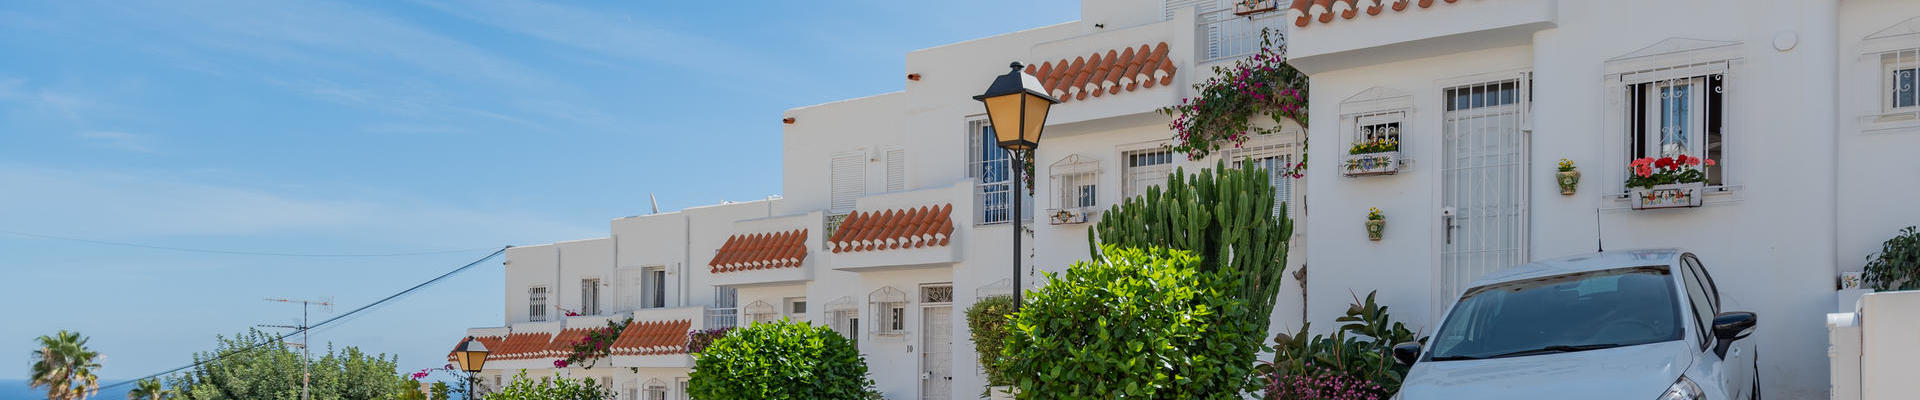 LV781: 2 Bedroom Townhouse for Sale